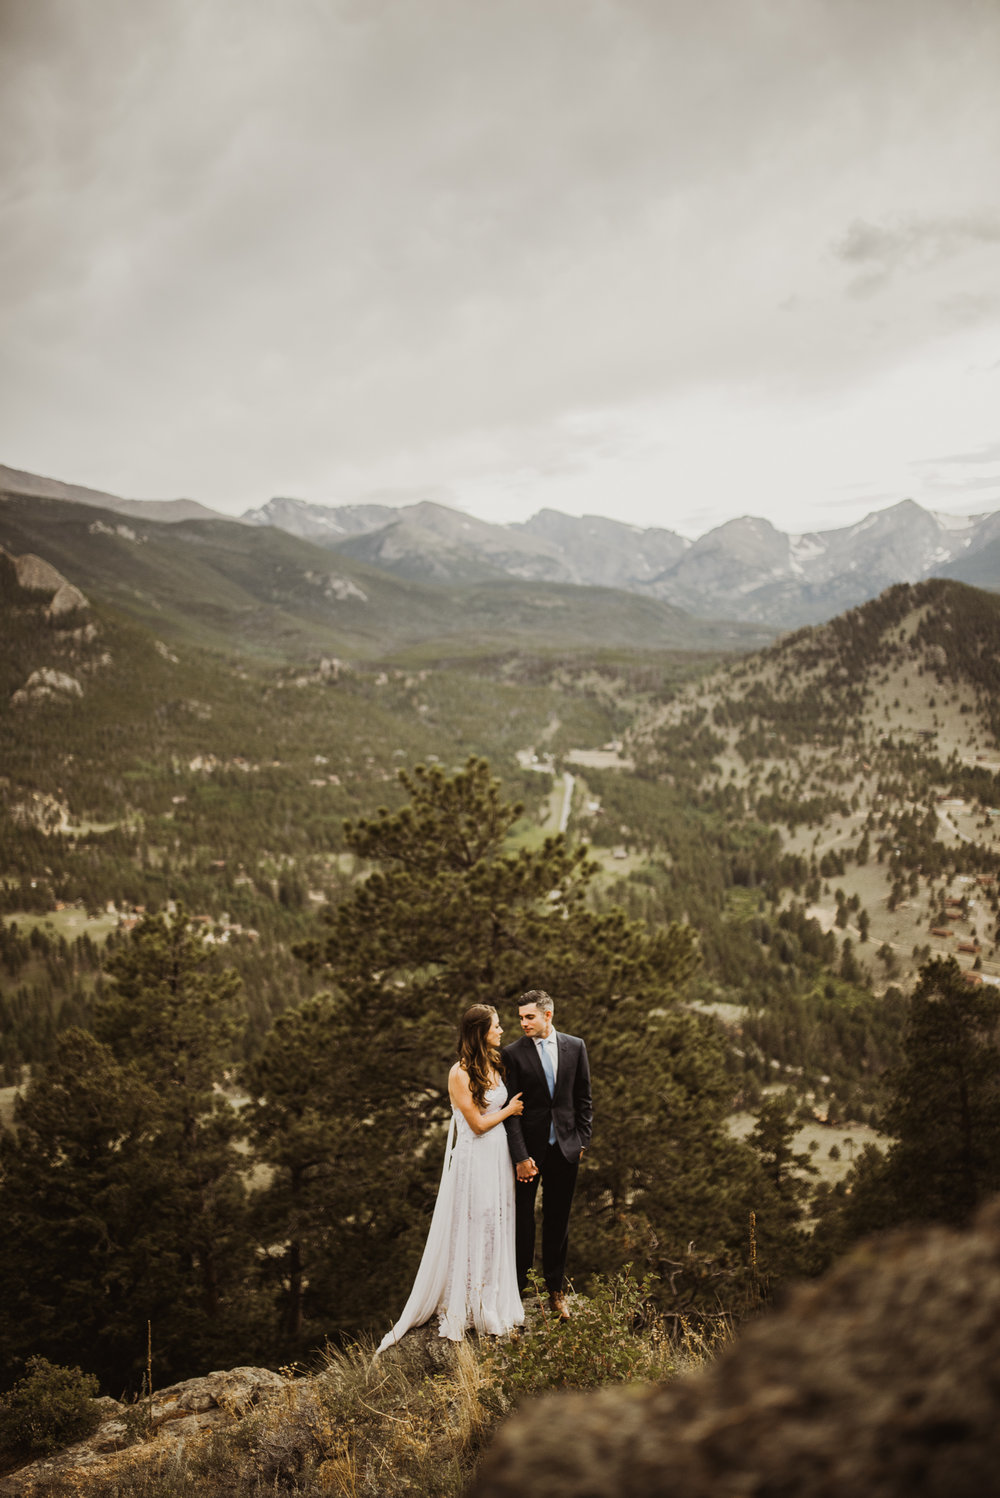 ©Isaiah + Taylor Photography - Estes National Park Adventure Elopement, Colorado Rockies-106.jpg